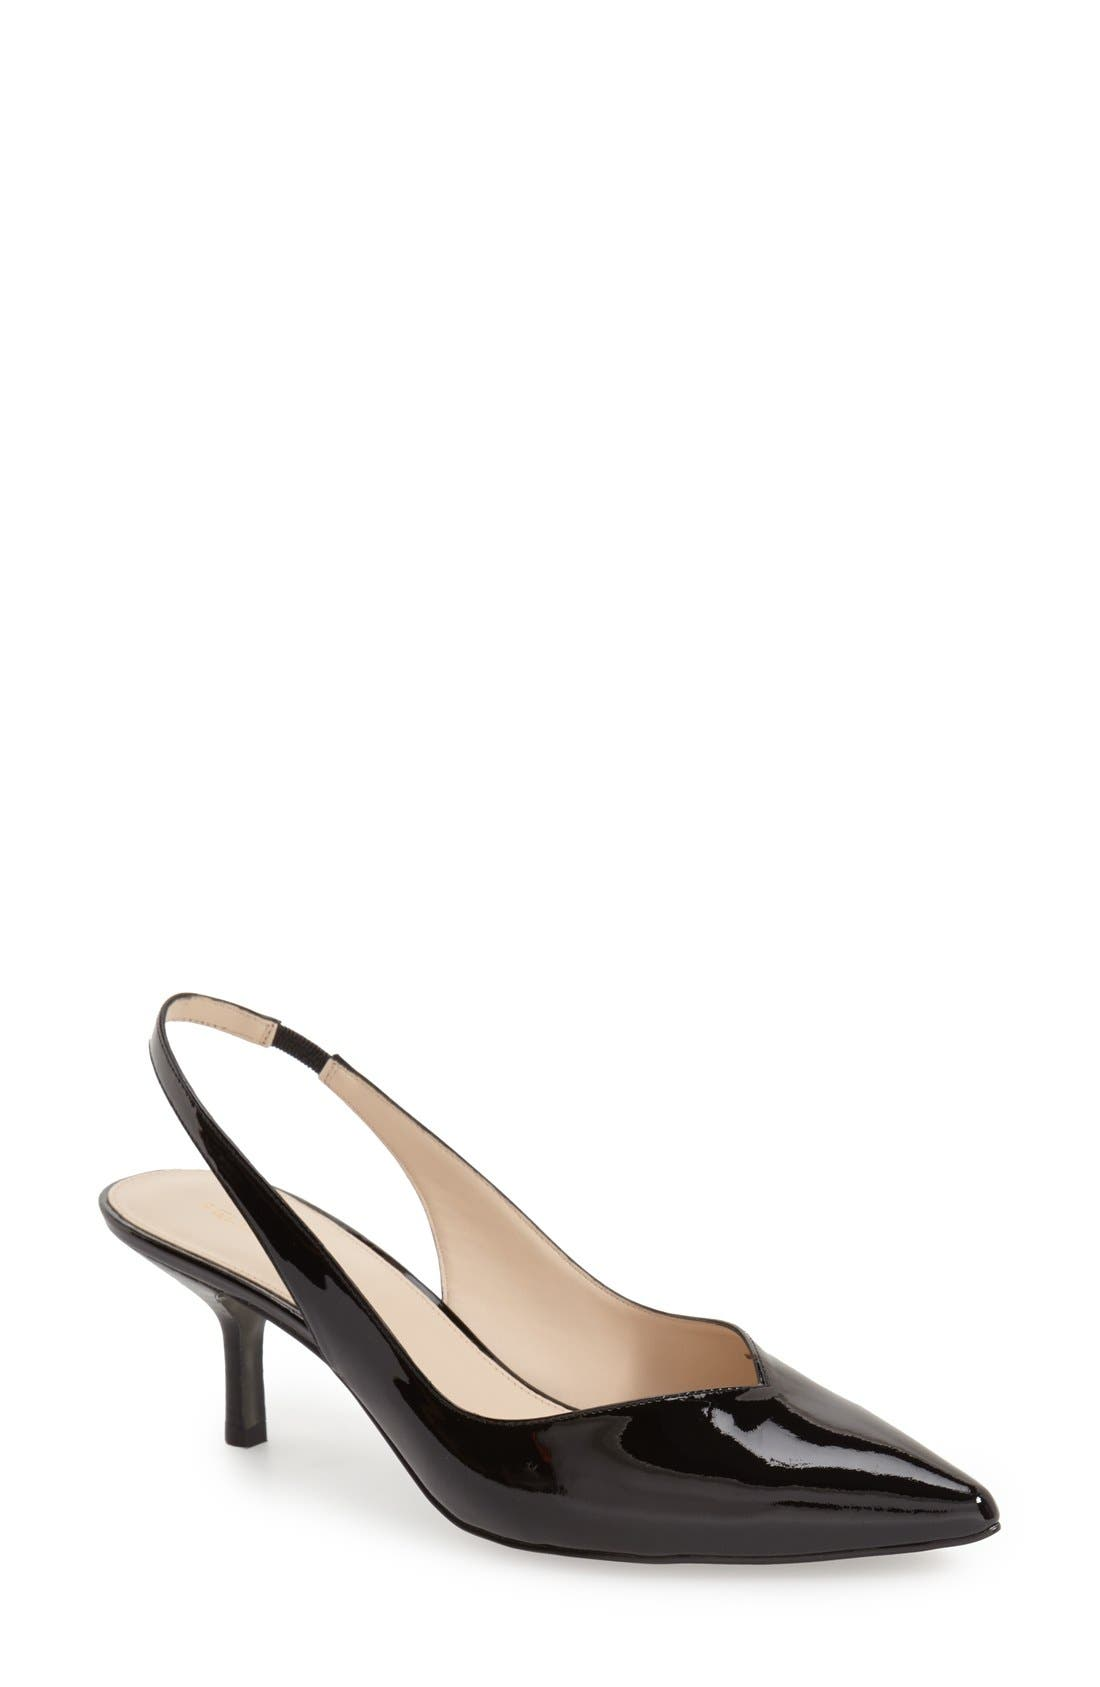 'Oasis' Slingback Pump,                             Main thumbnail 1, color,                             Black Patent Leather